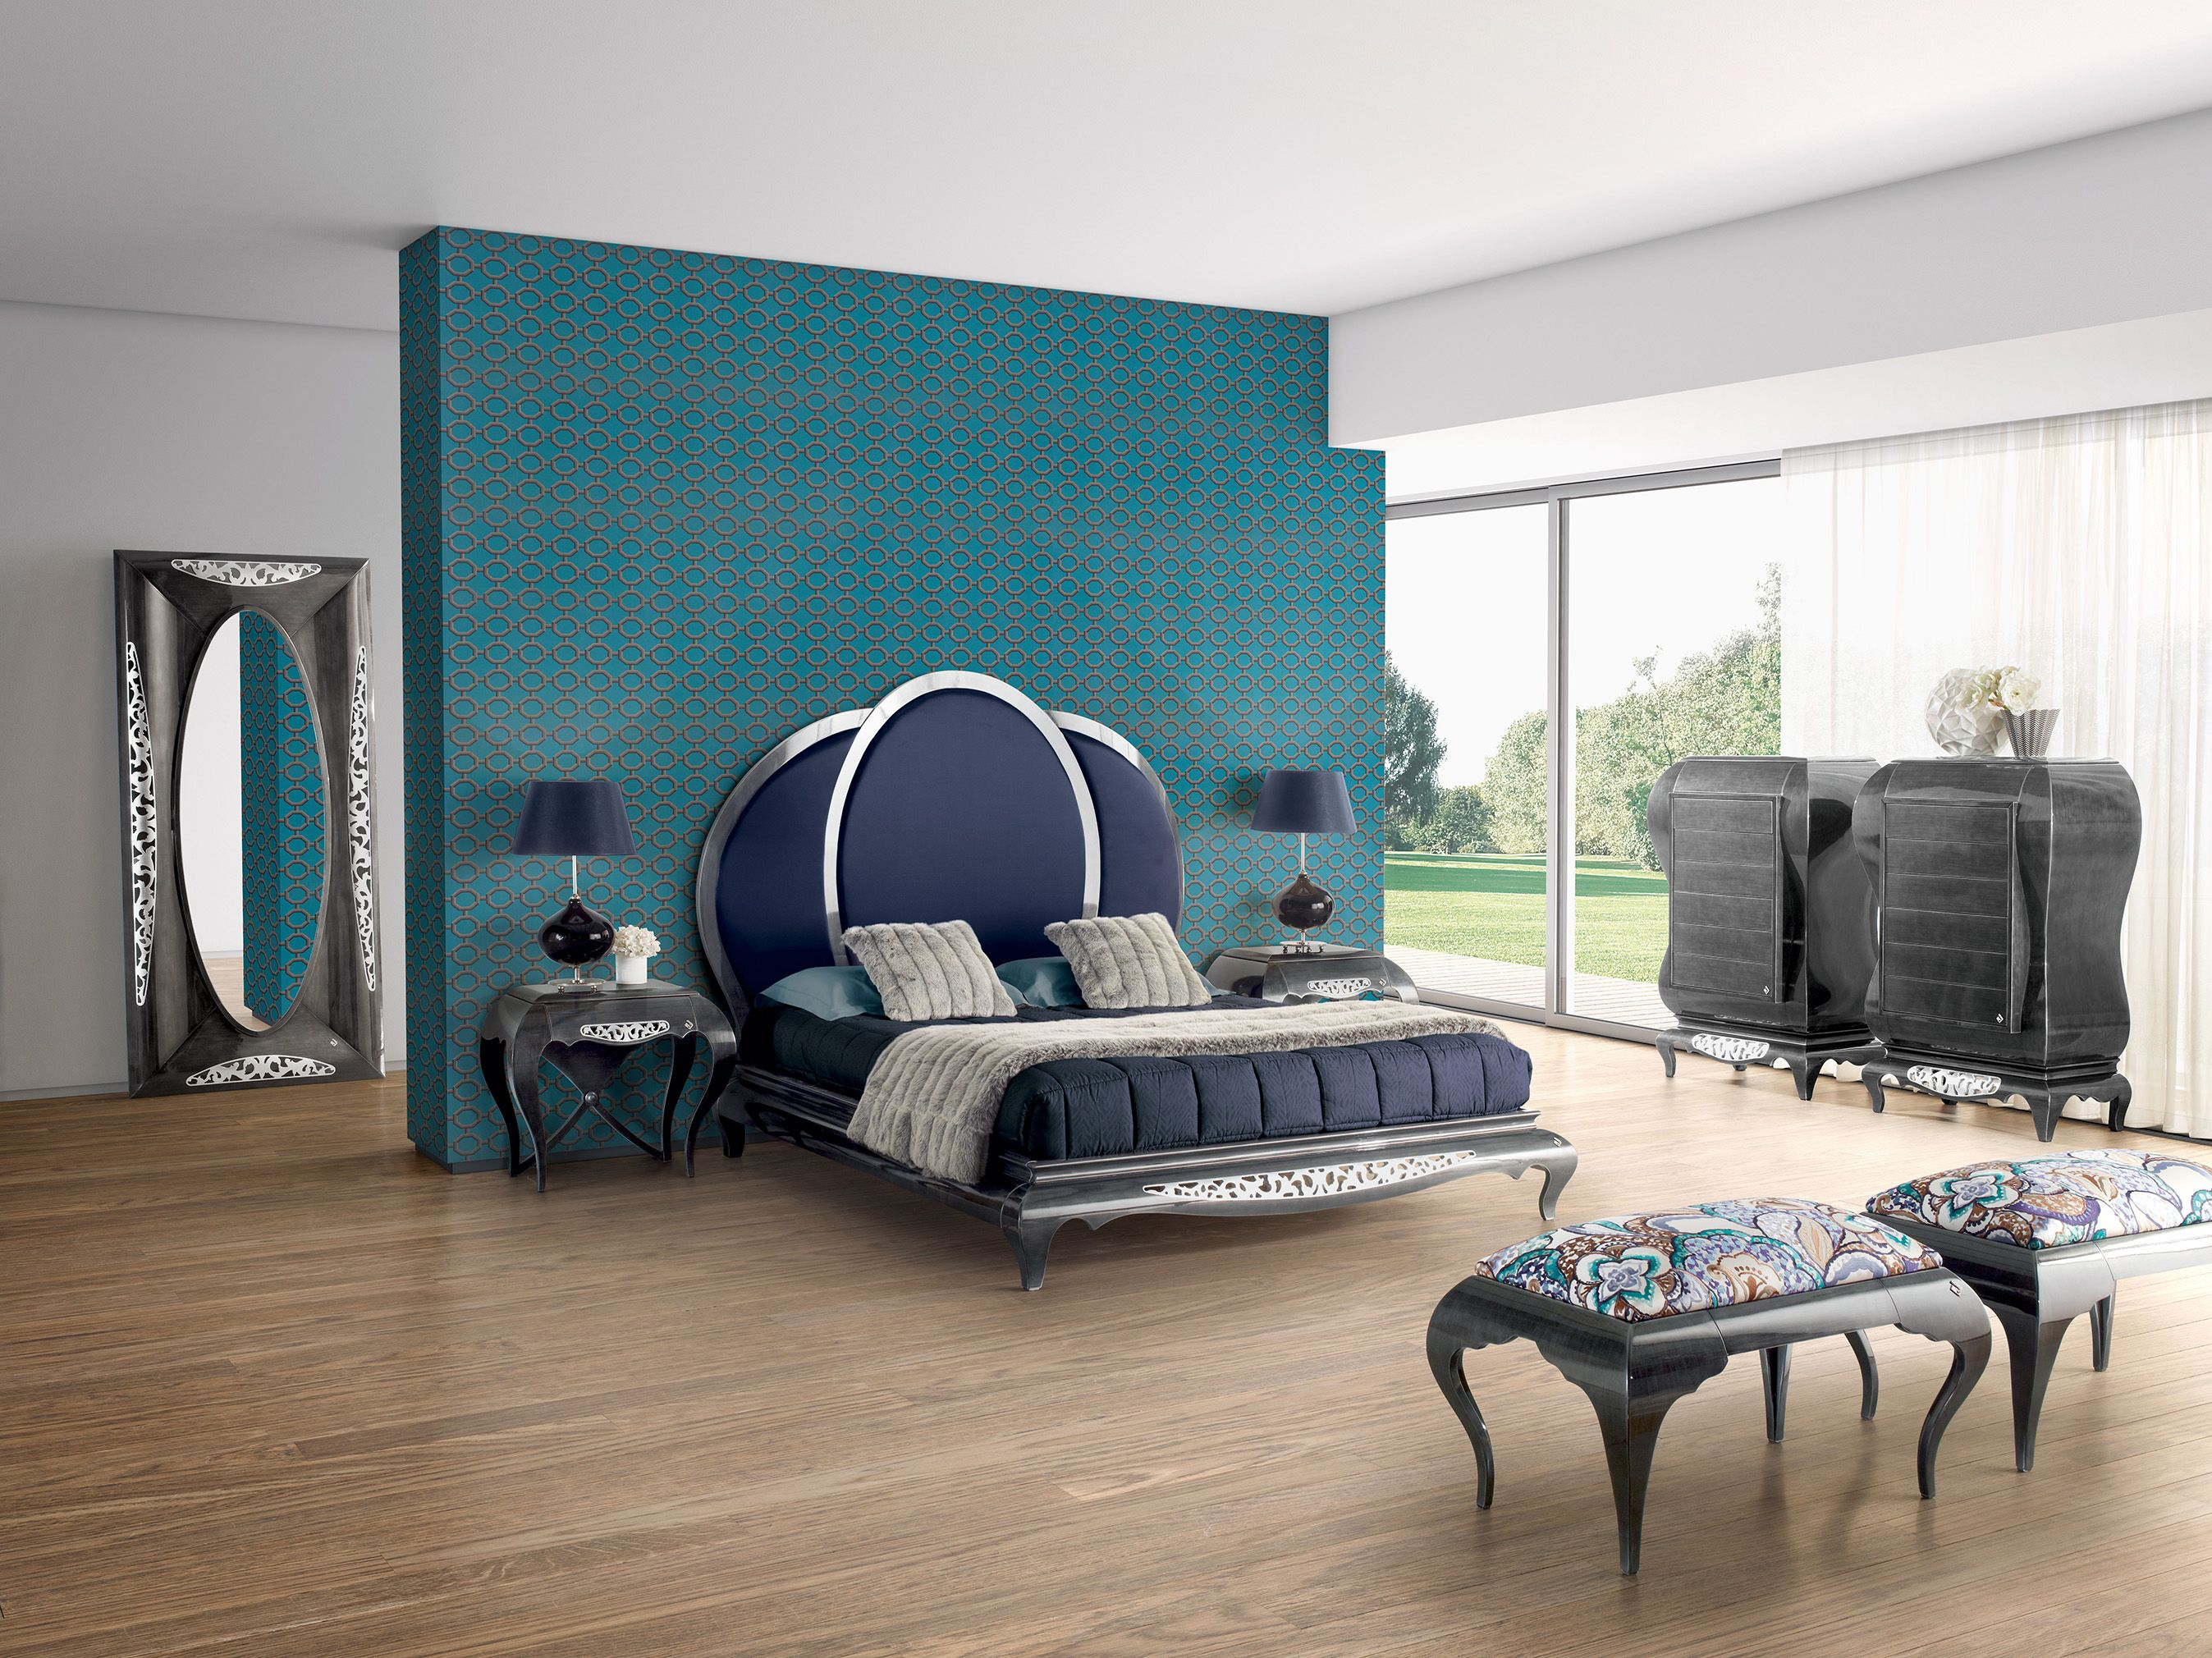 New York Bedroom Wallpaper New York Blue Bedroom Jetclass Real Furniture Luxury Interior